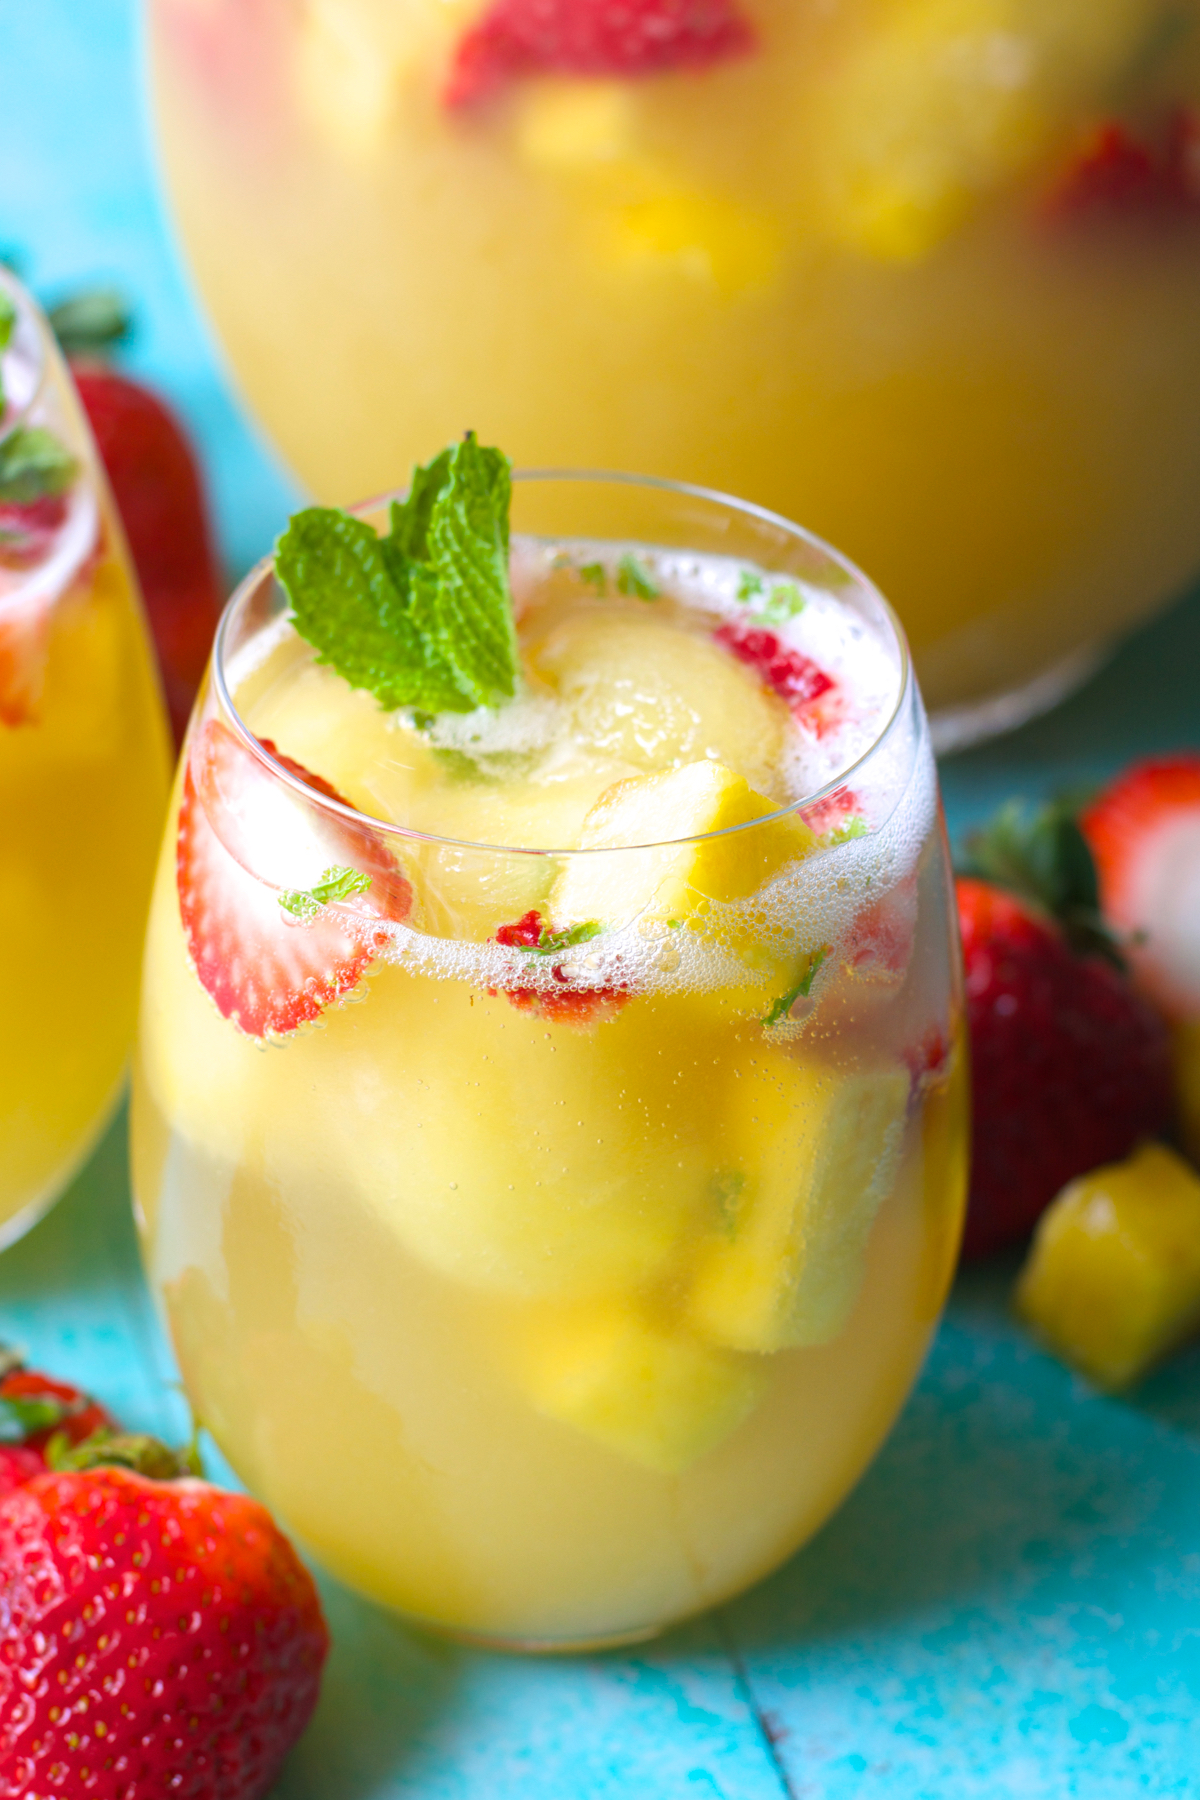 Close up of a glass of strawberry pineapple punch garnished with mint leaves and fresh fruit.